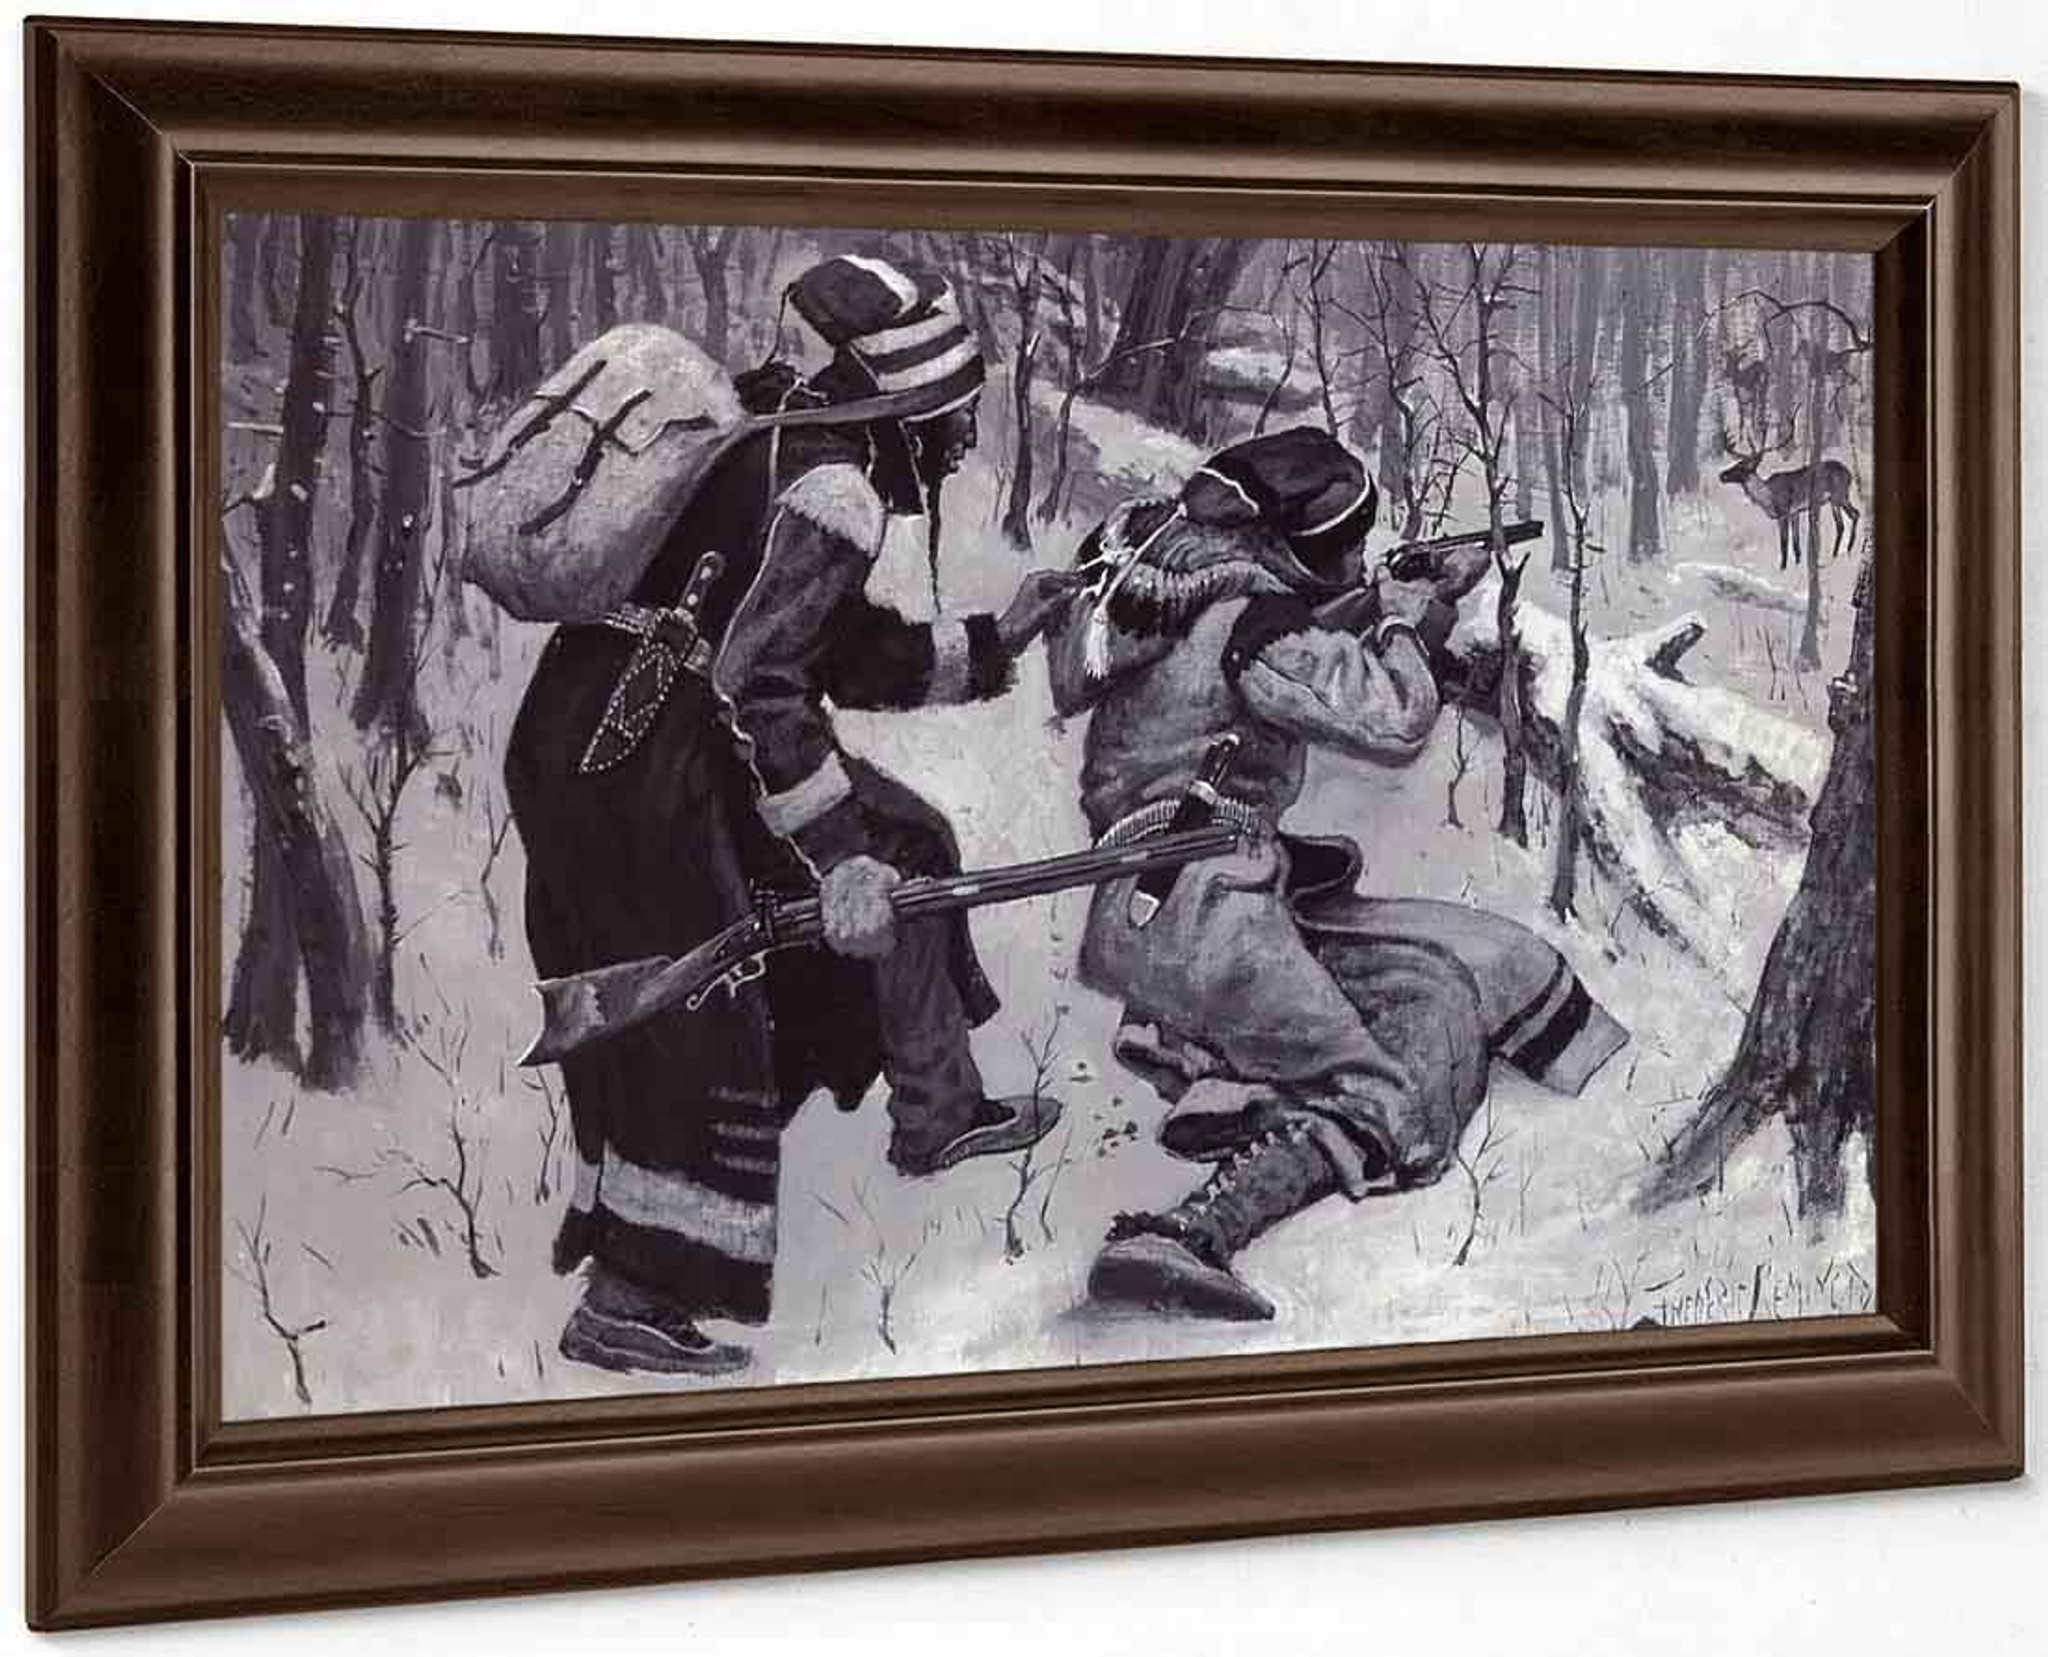 INDIANS HUNTING THE CARIBOU SHOOT SHOOT BY FREDERIC REMINGTON CARIBOU HUNTING